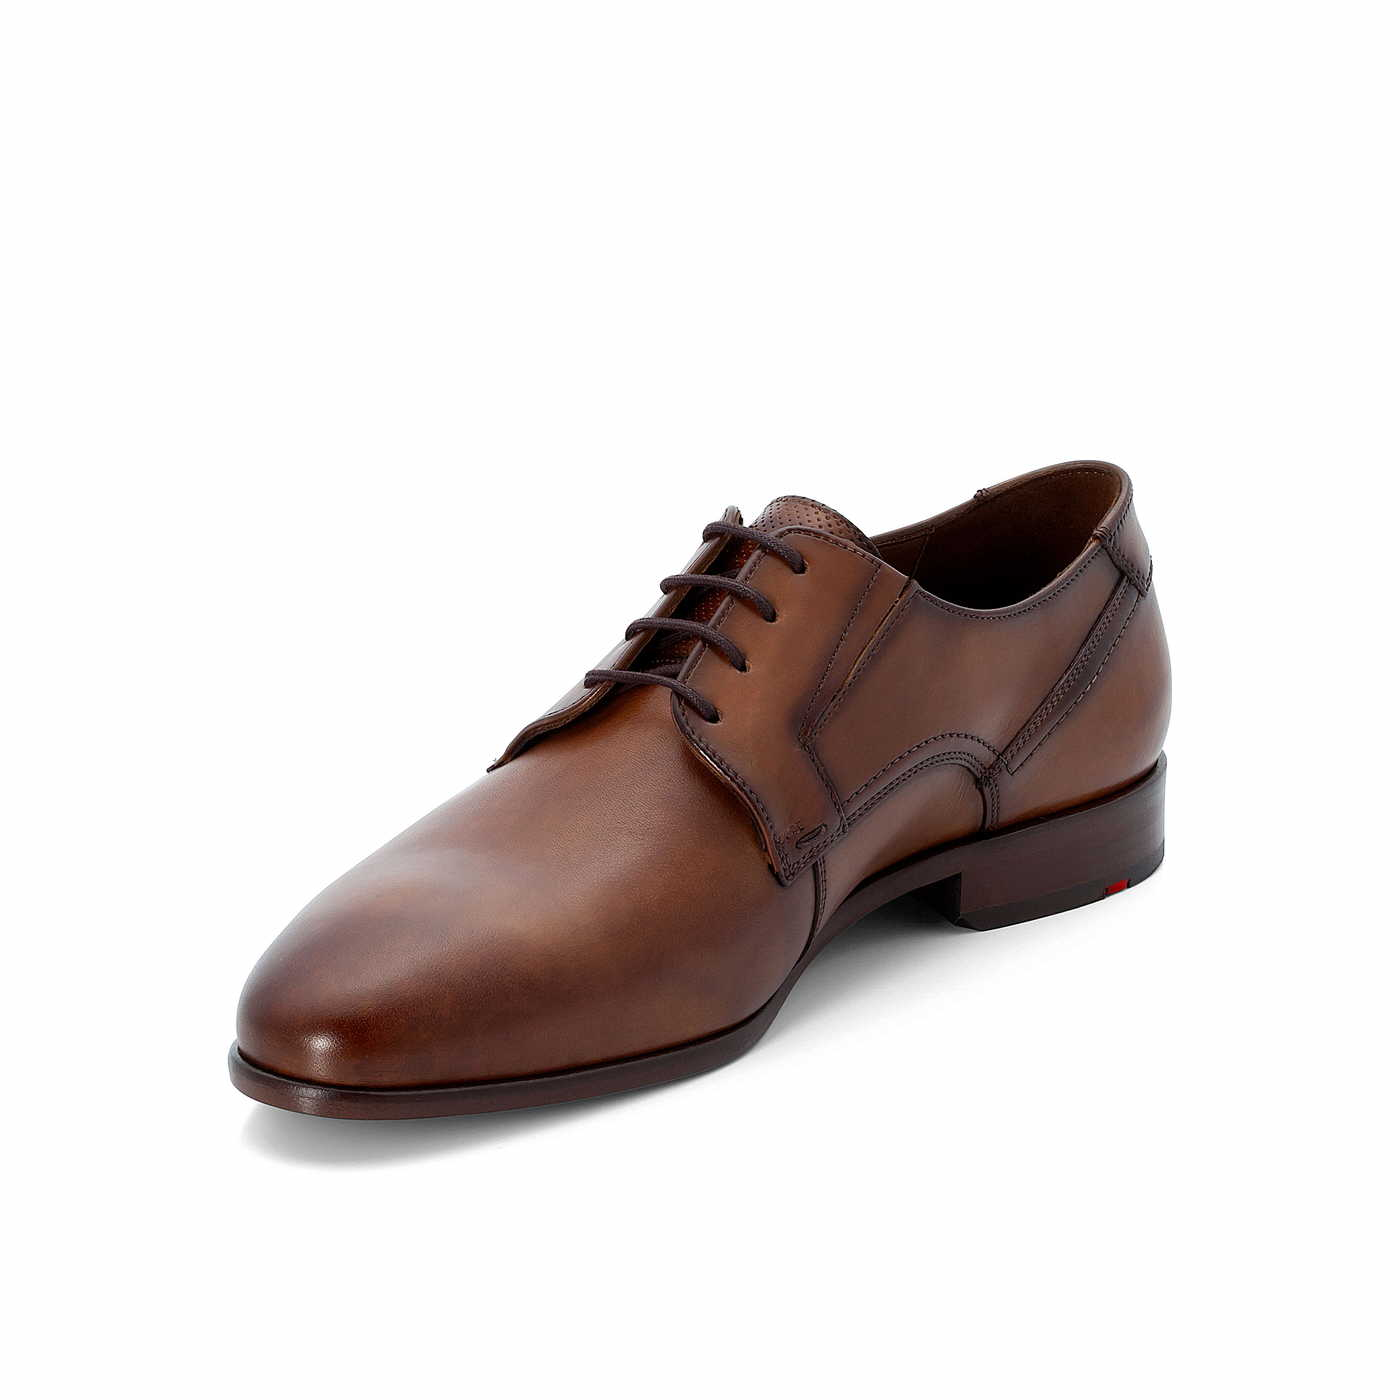 Herren Lloyd Business Schuhe braun KEEP 42,5